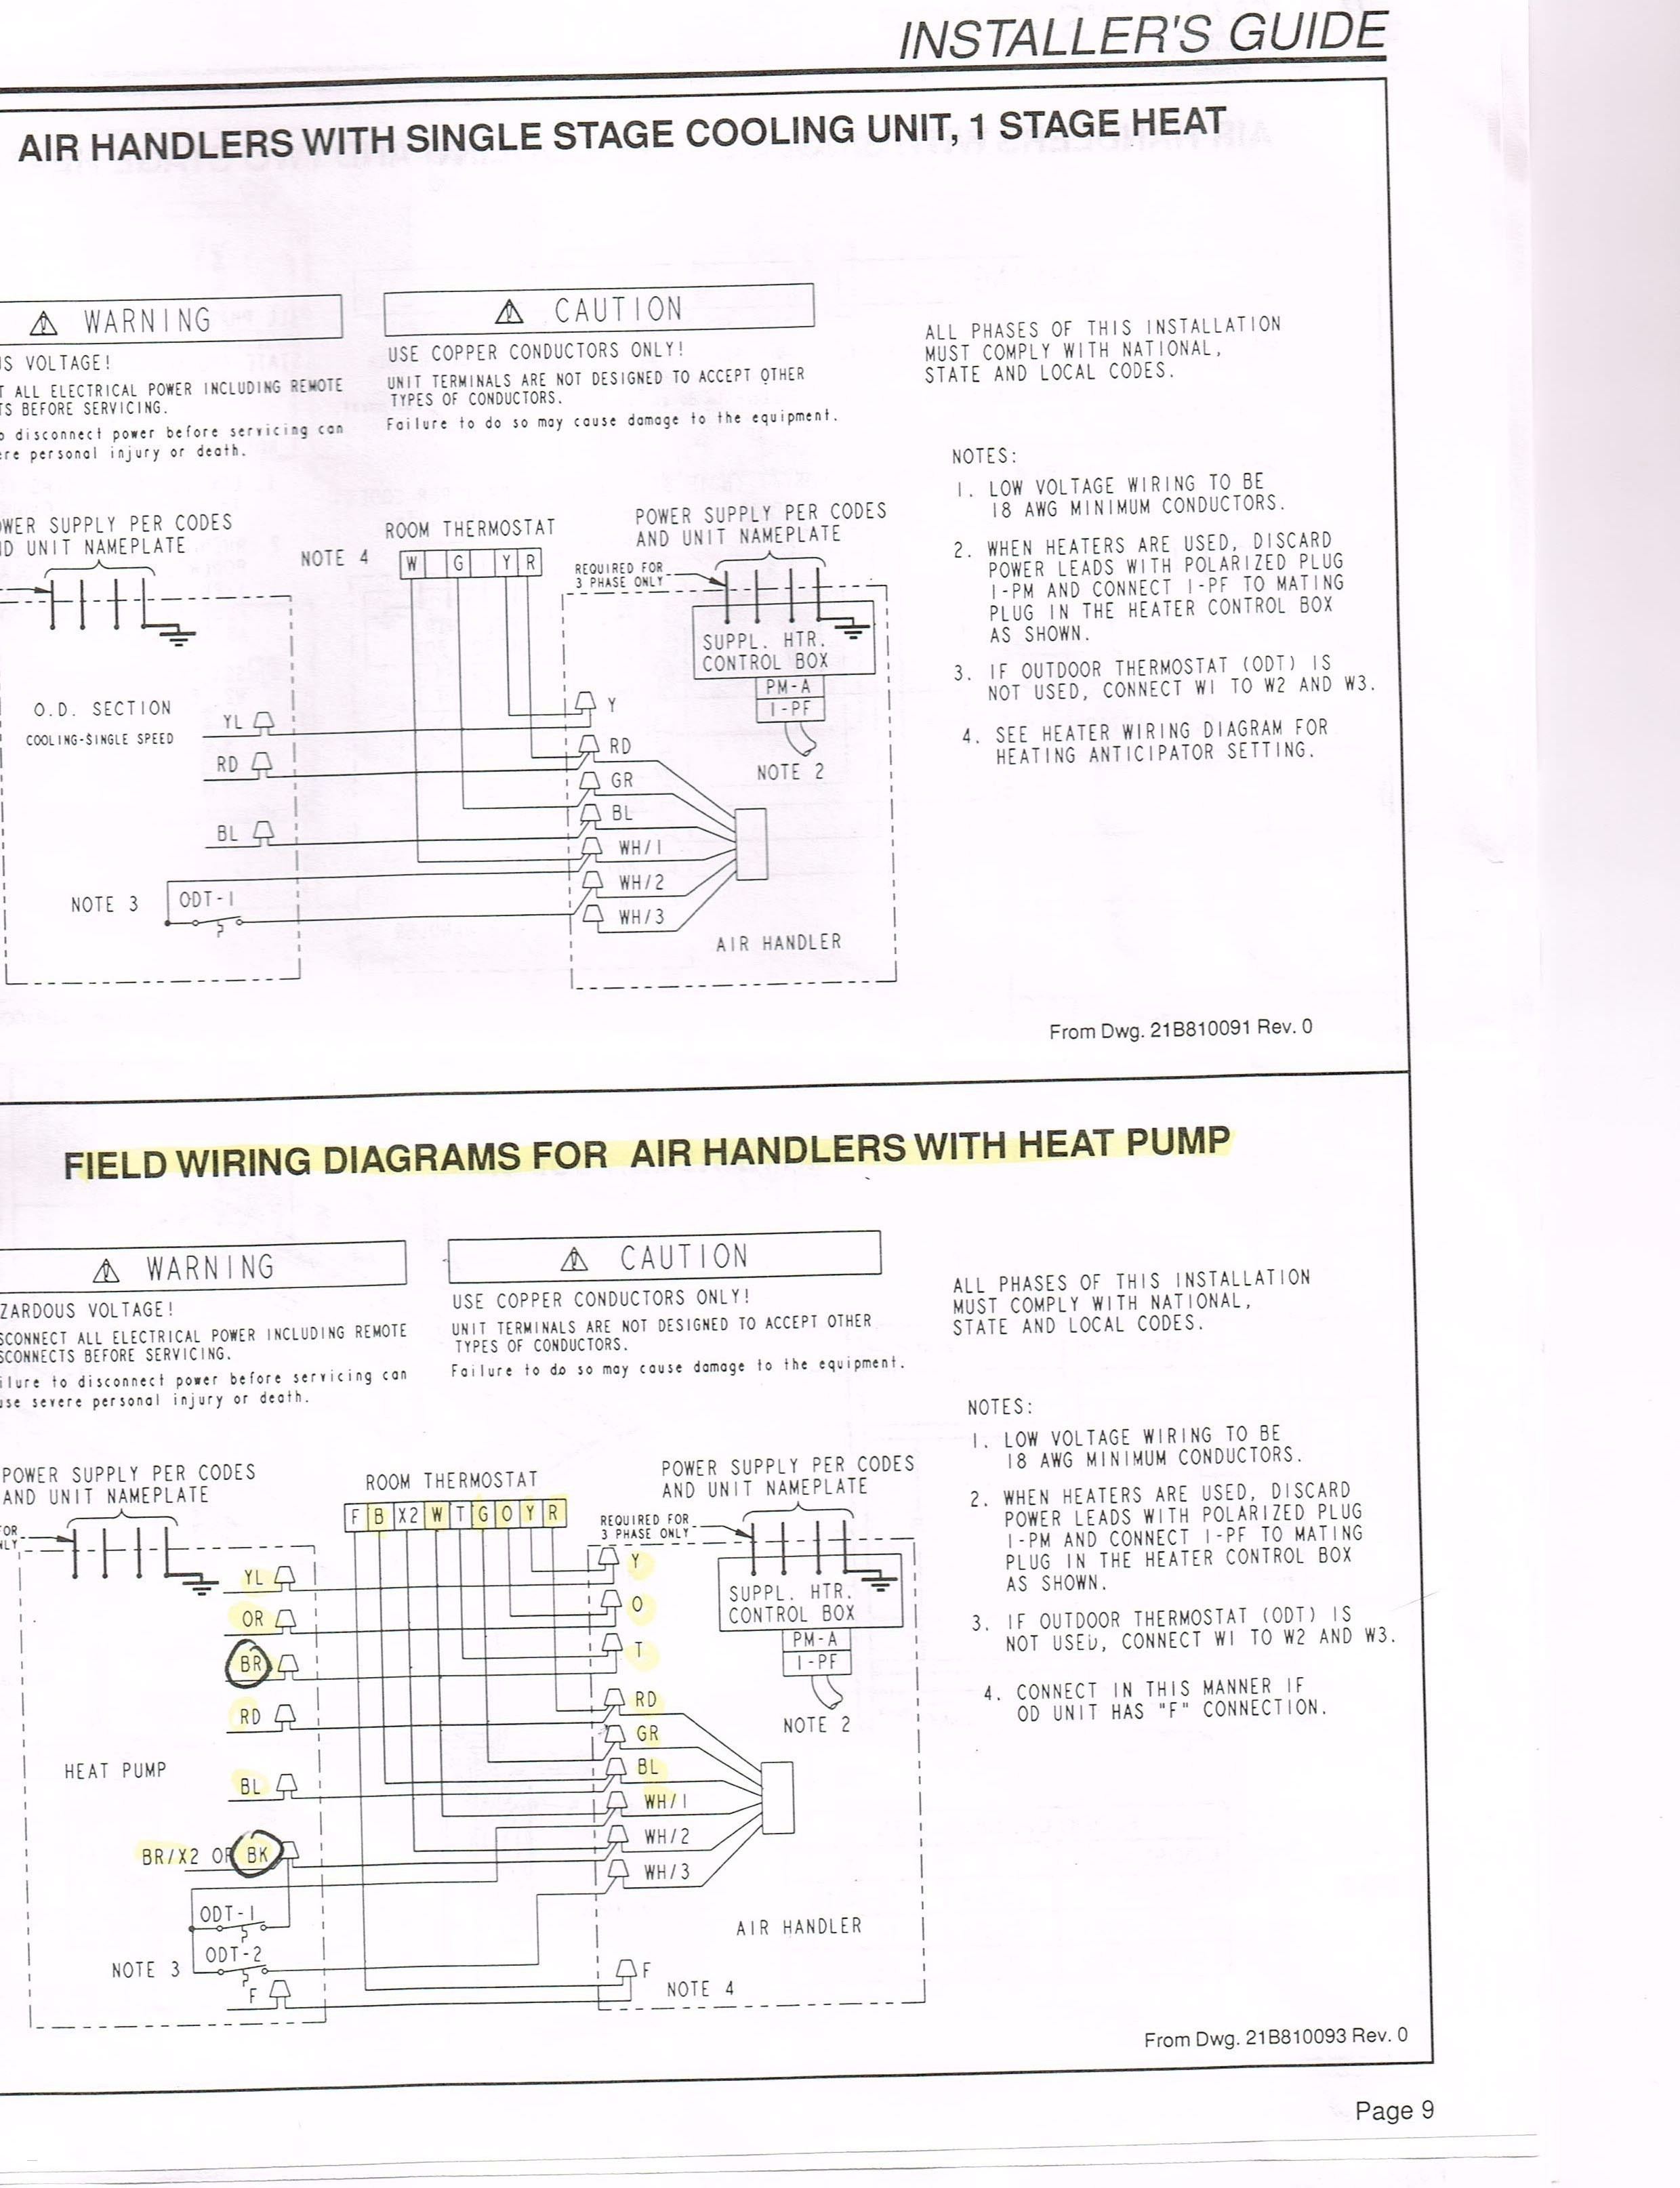 3 Phase Wiring Diagram 3 Phase Wiring Diagram House Best Wiring Diagram Warn Winch Archives Of 3 Phase Wiring Diagram